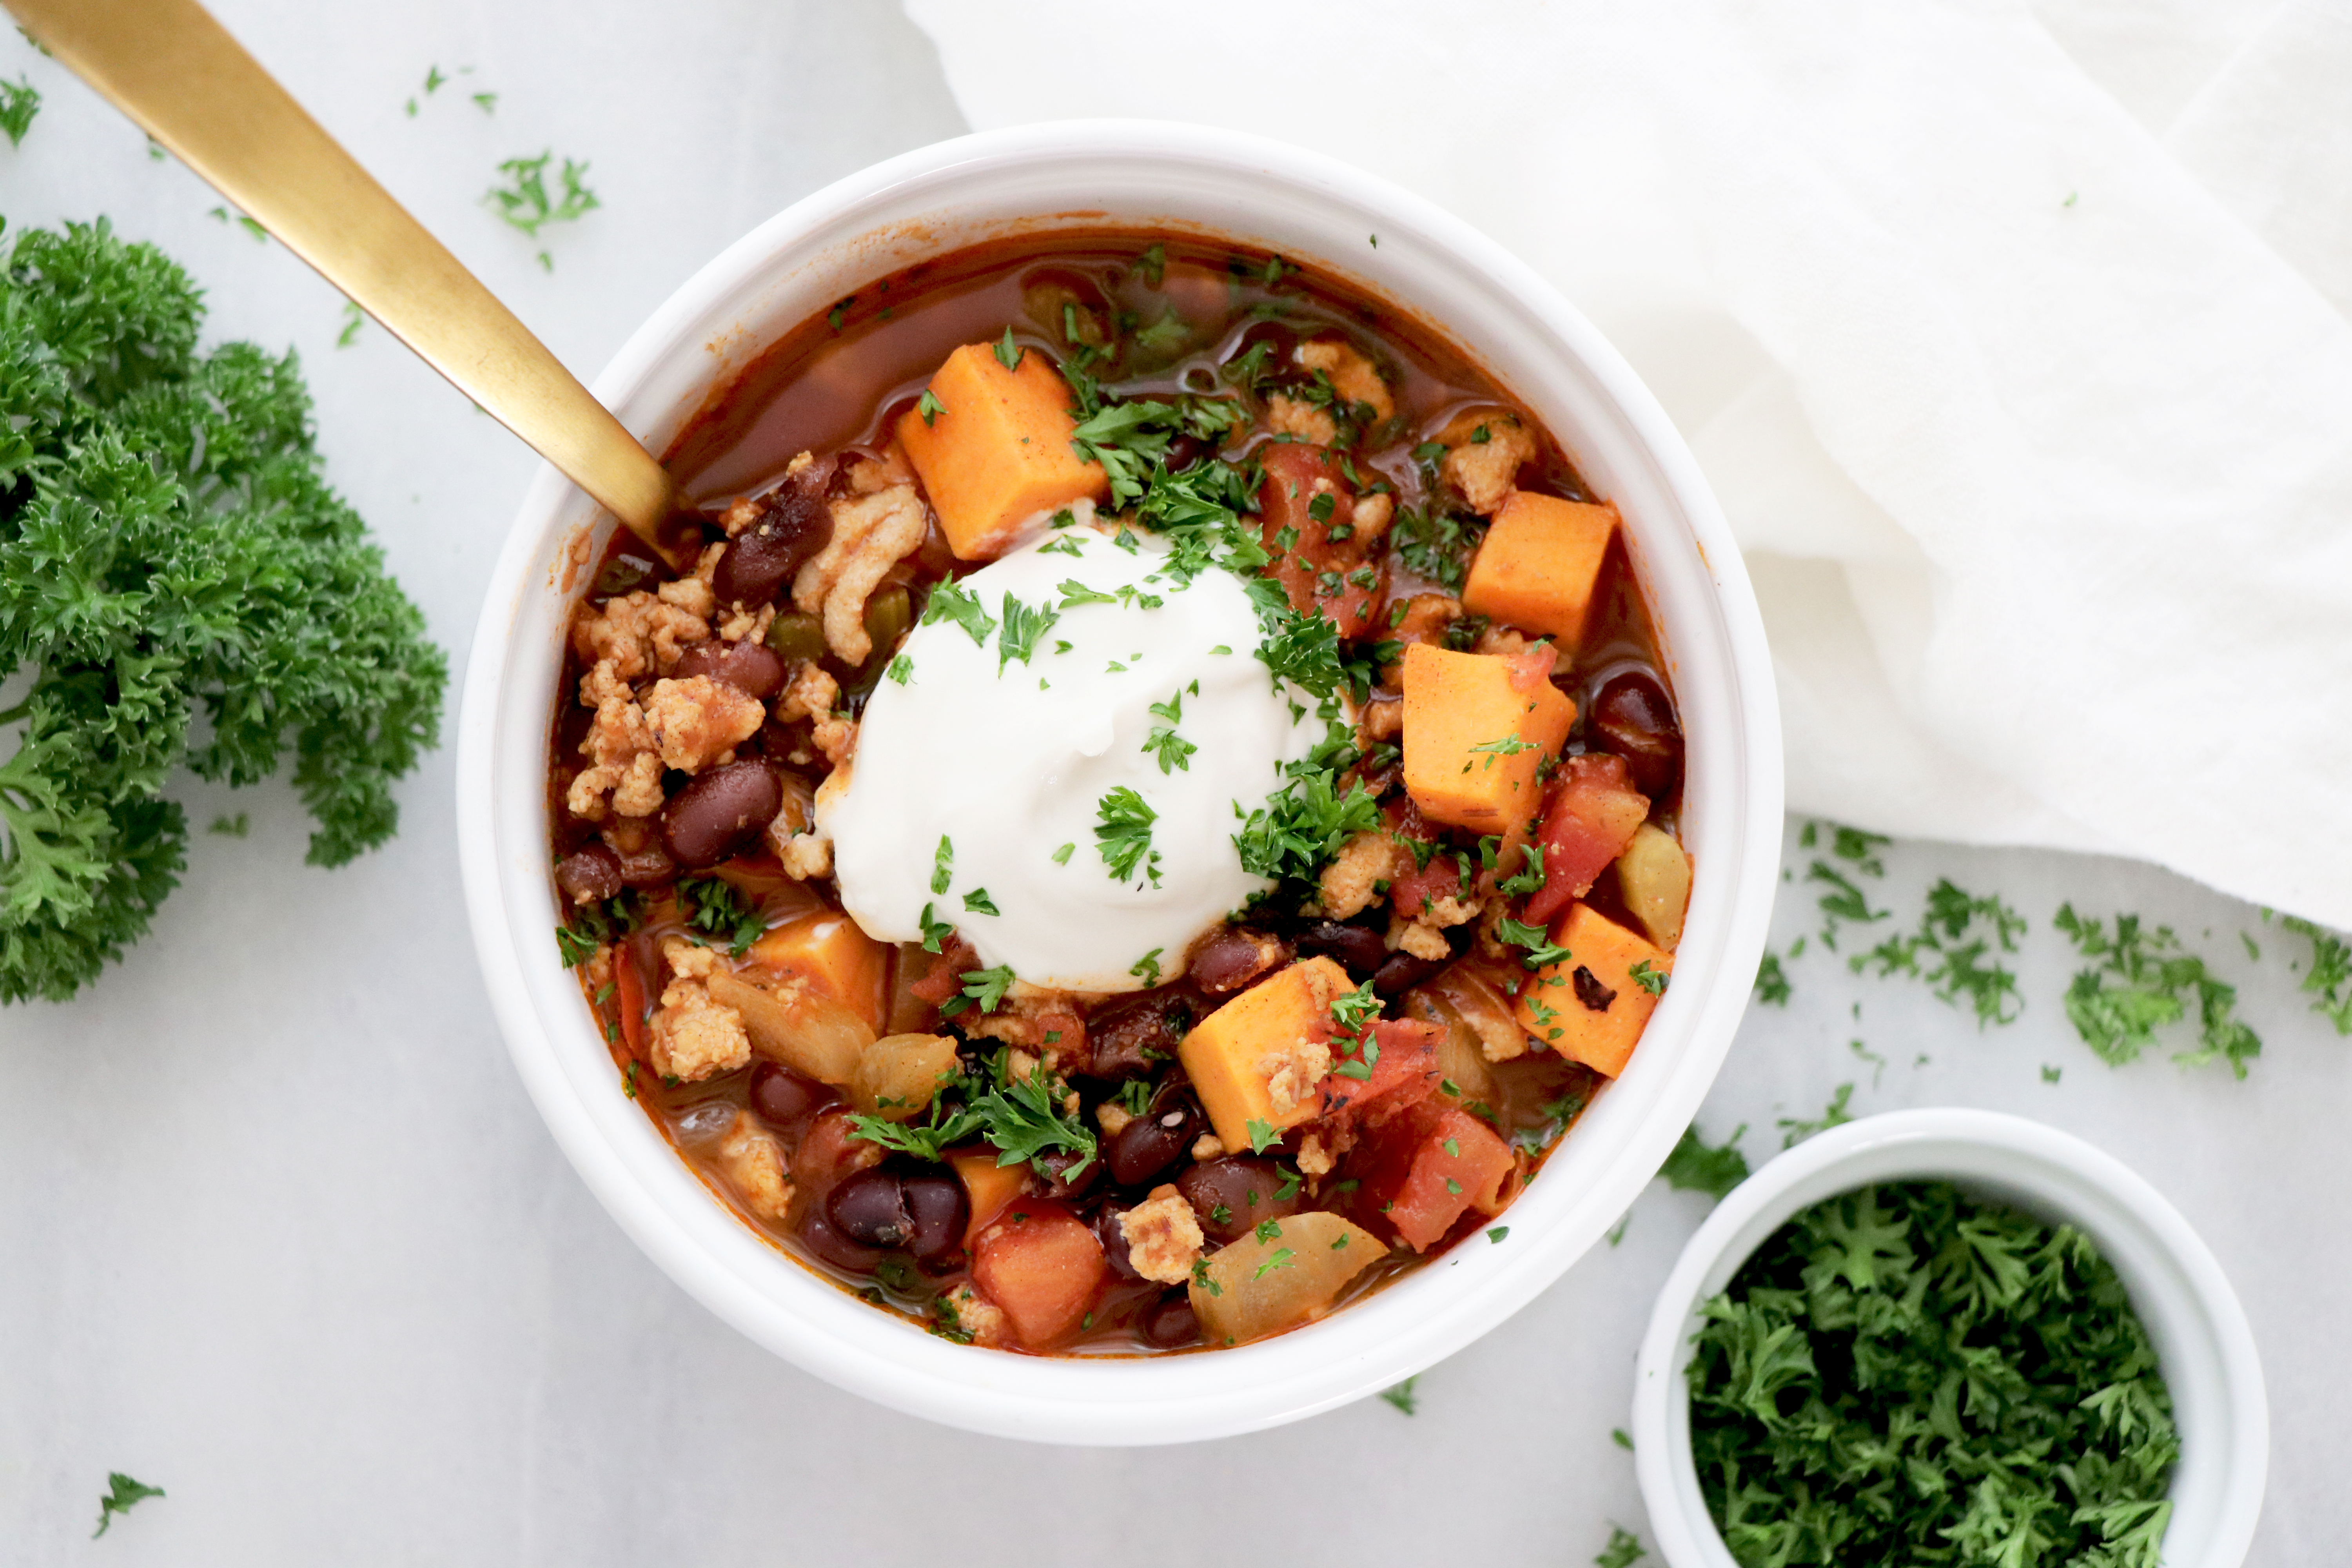 Chili in white bowl with dairy-free sour cream and green herbs